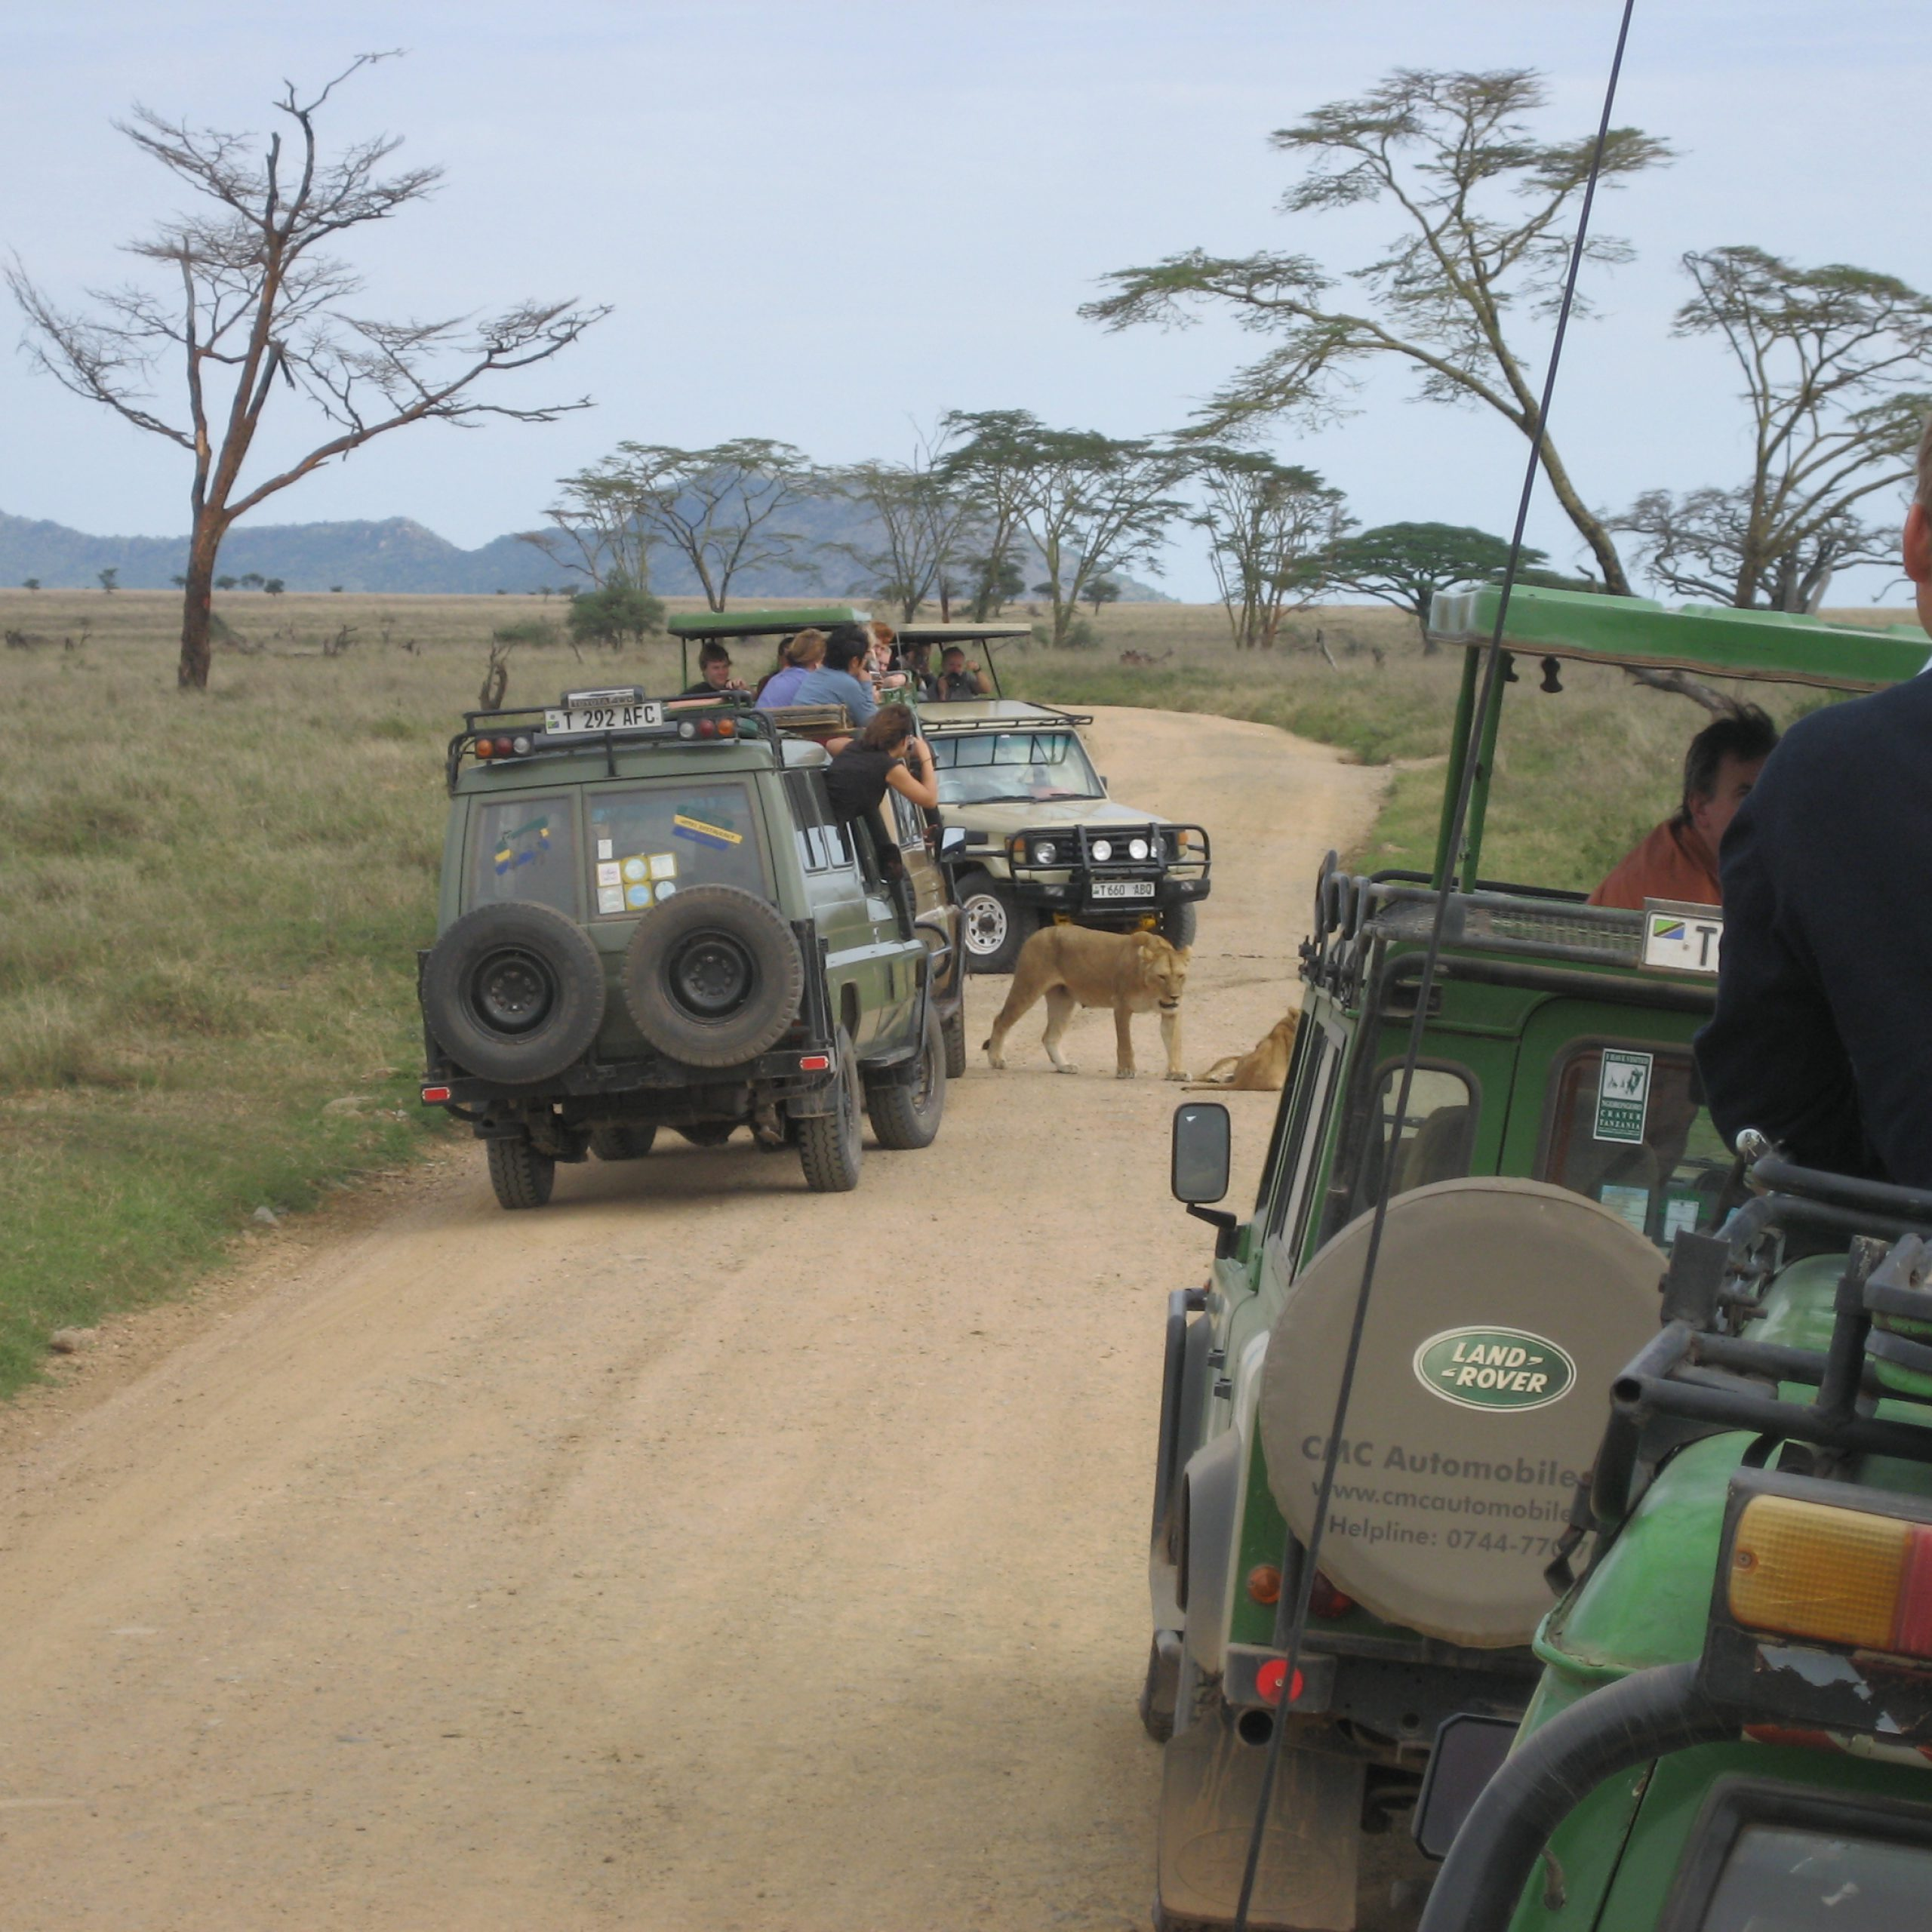 Day 3: Karatu to Serengeti National Park